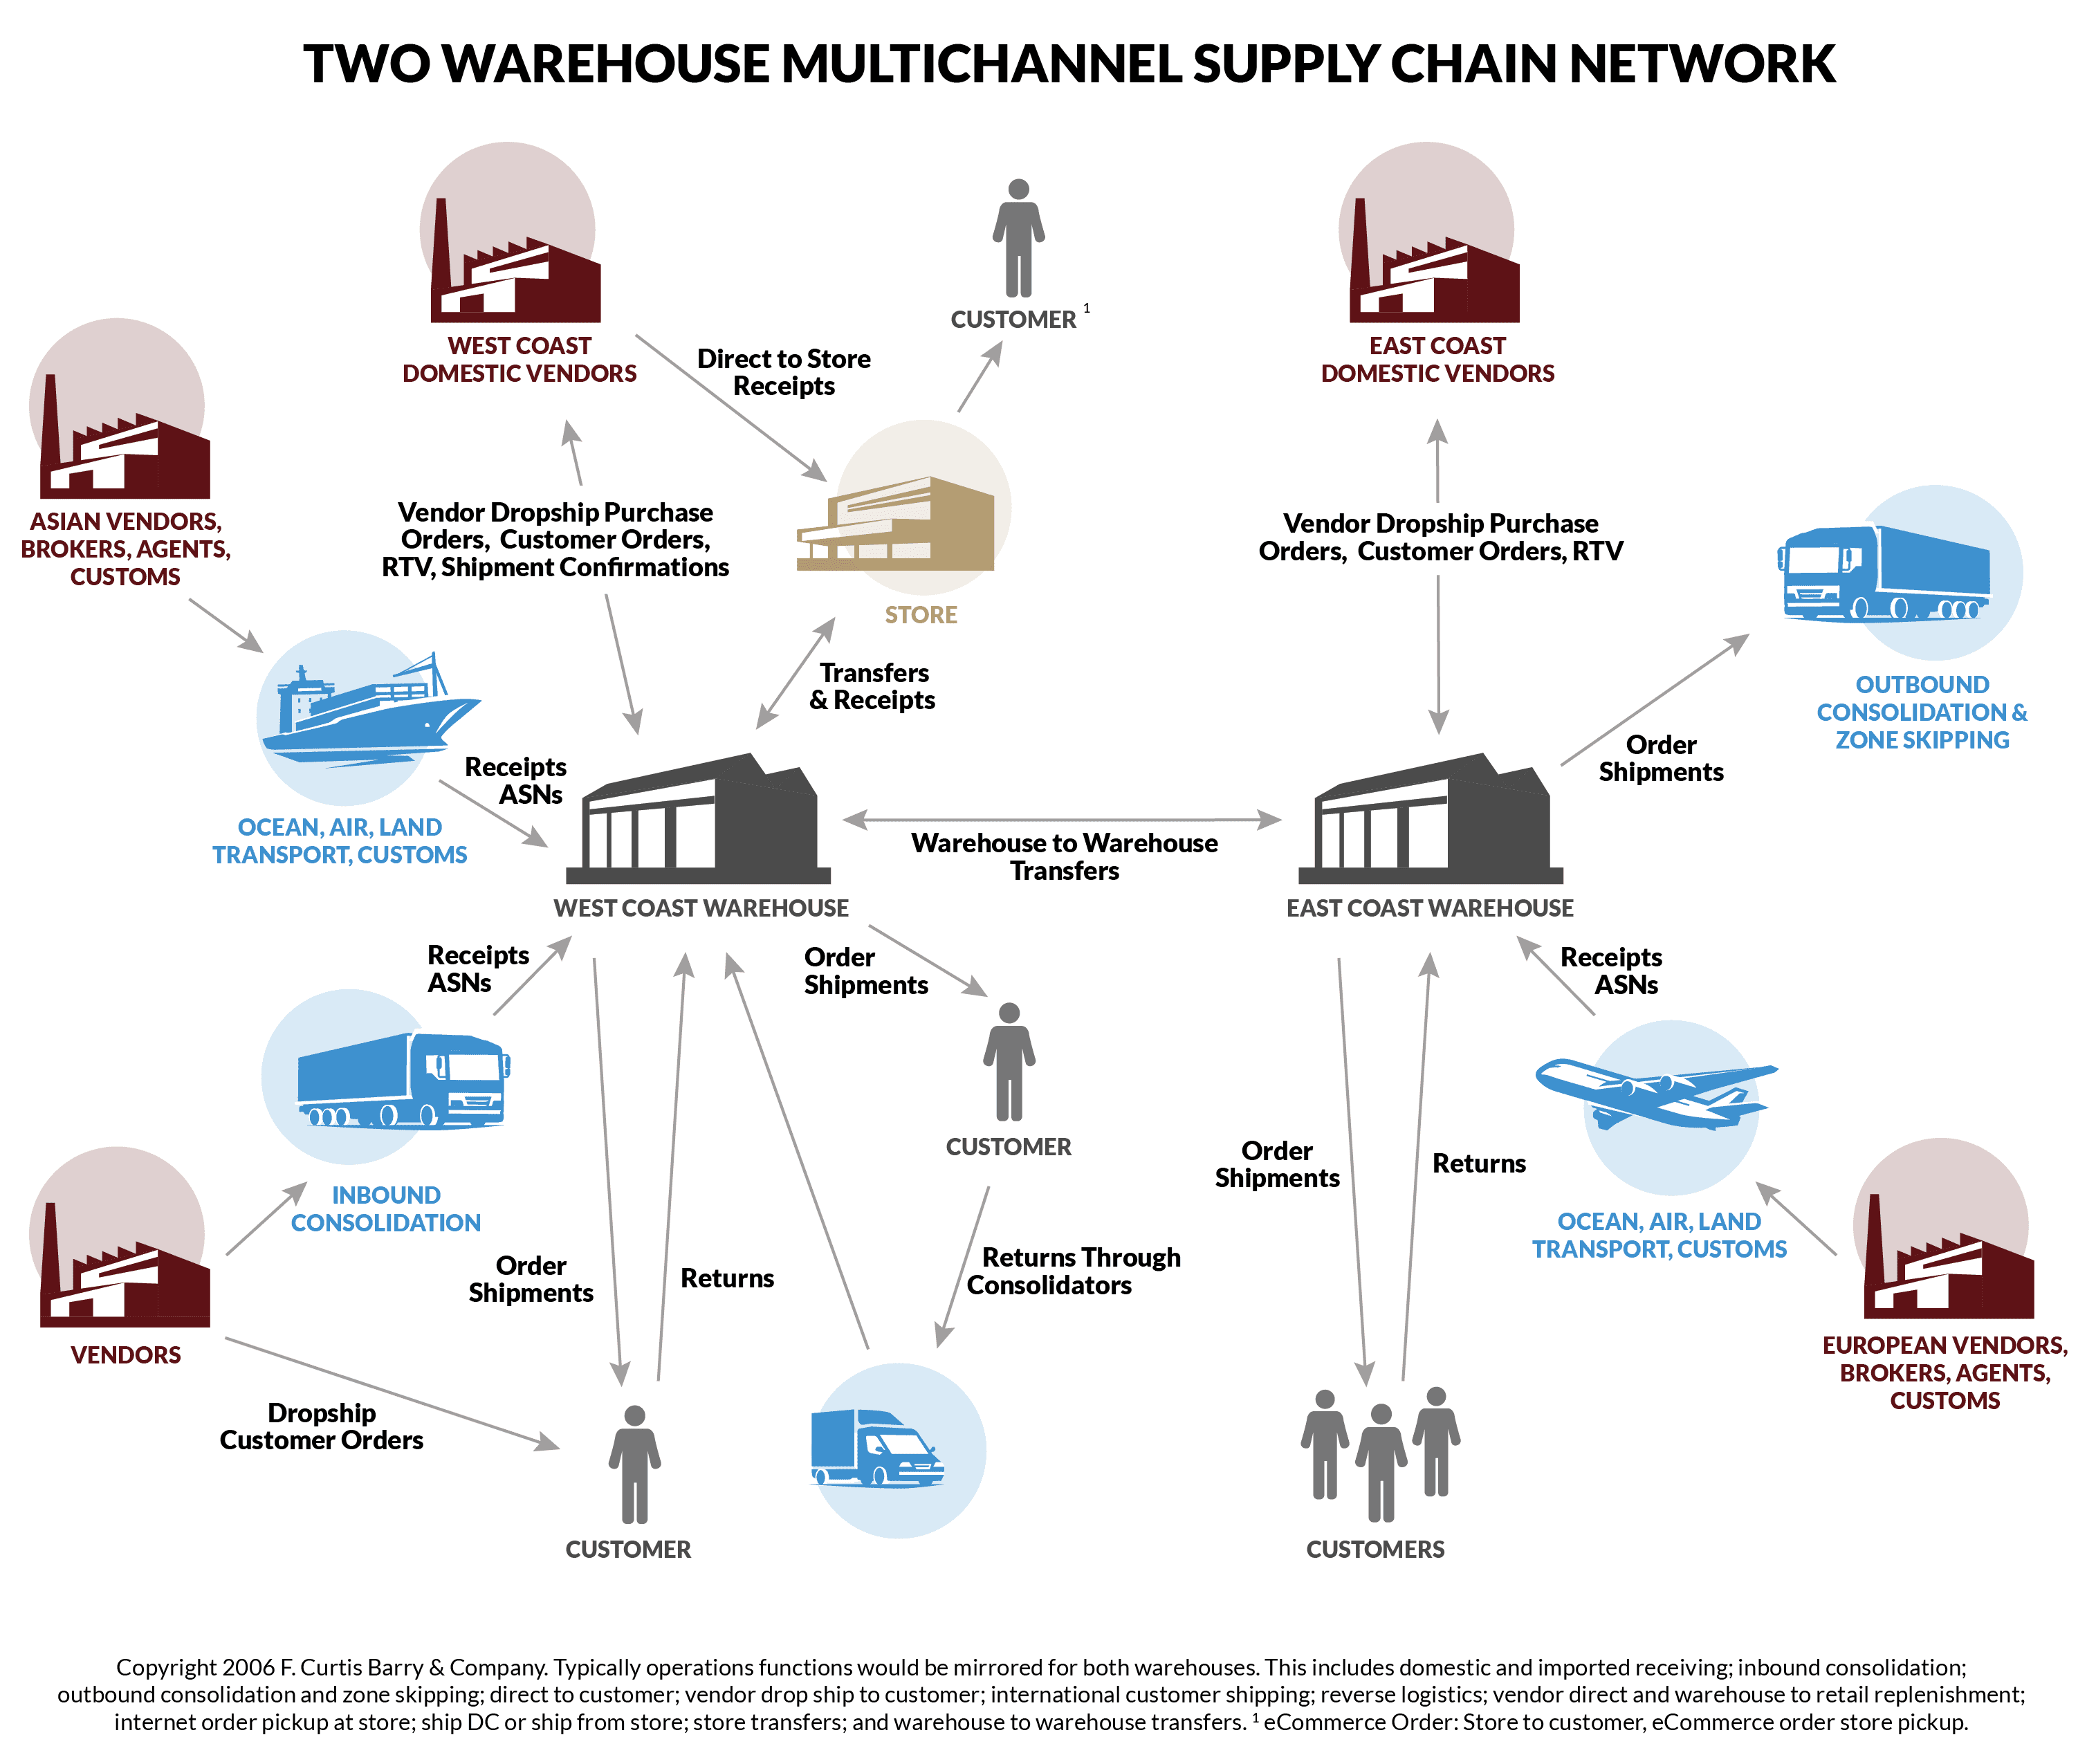 Two Warehouse Multichannel Supply Chain Network